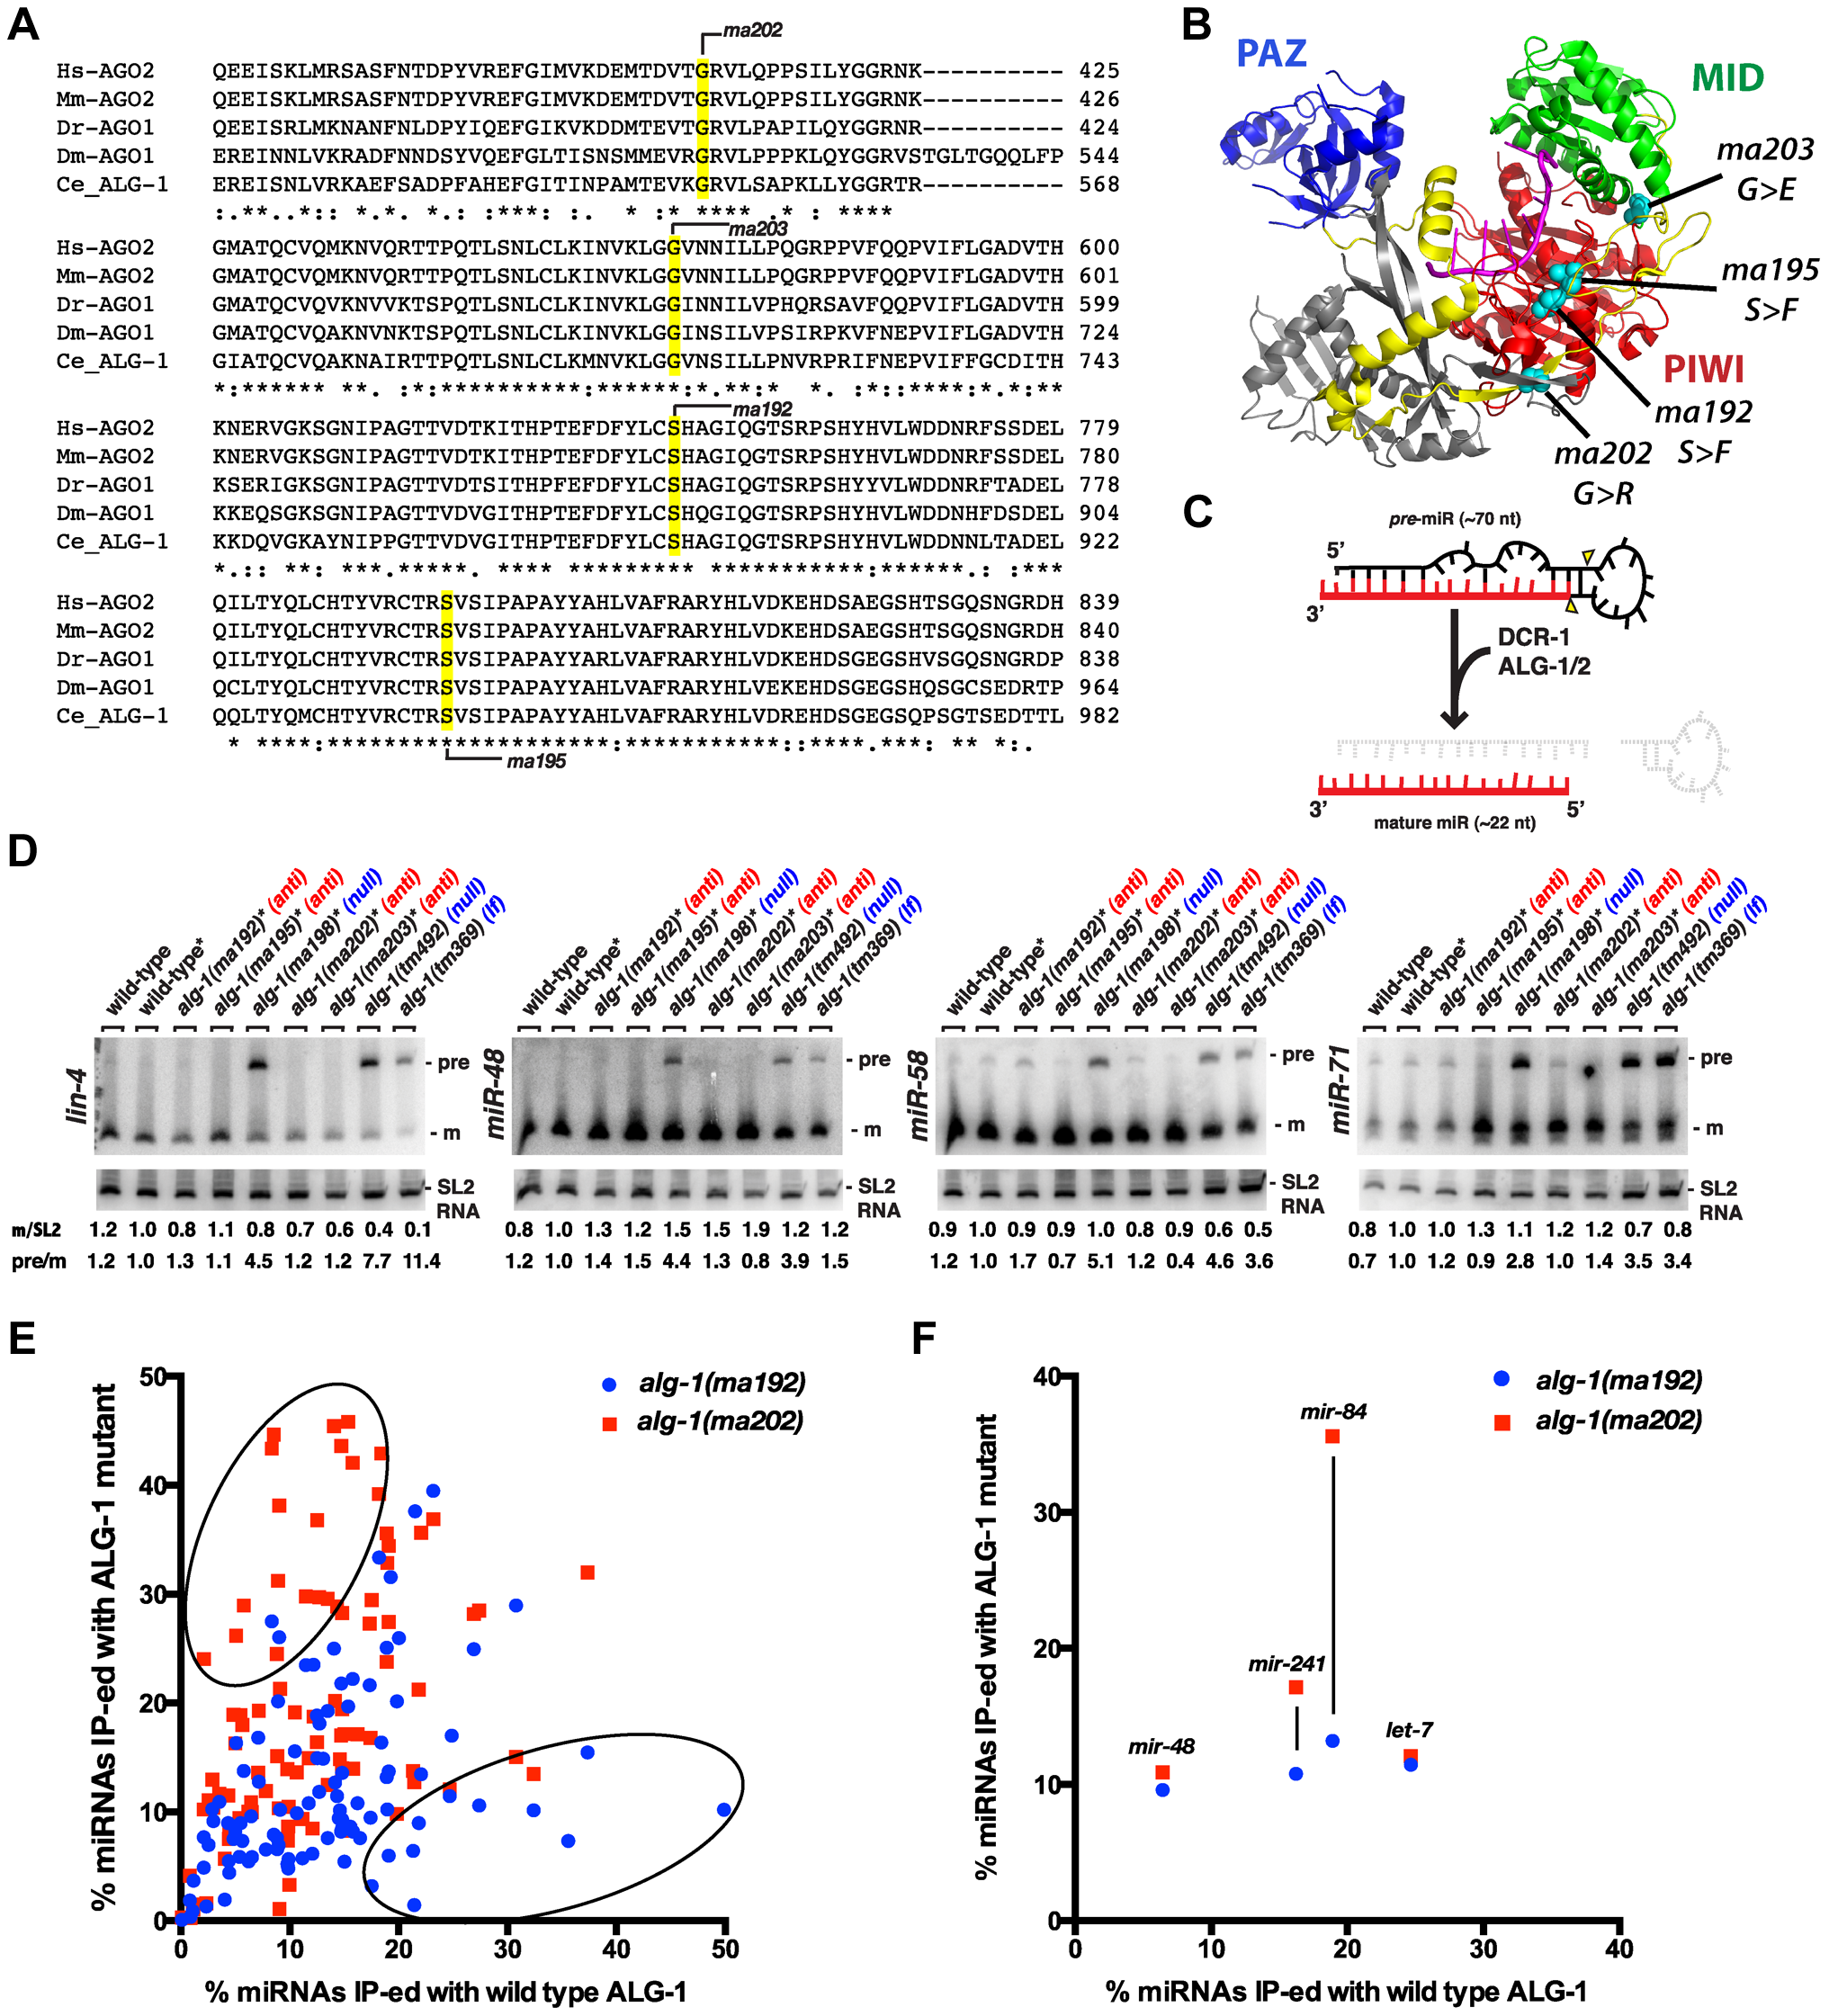 <i>alg-1(anti)</i> alleles affect conserved amino acids within the ALG-1 protein, do not affect pre-microRNA processing, and associate with microRNAs to levels comparable to wild type.